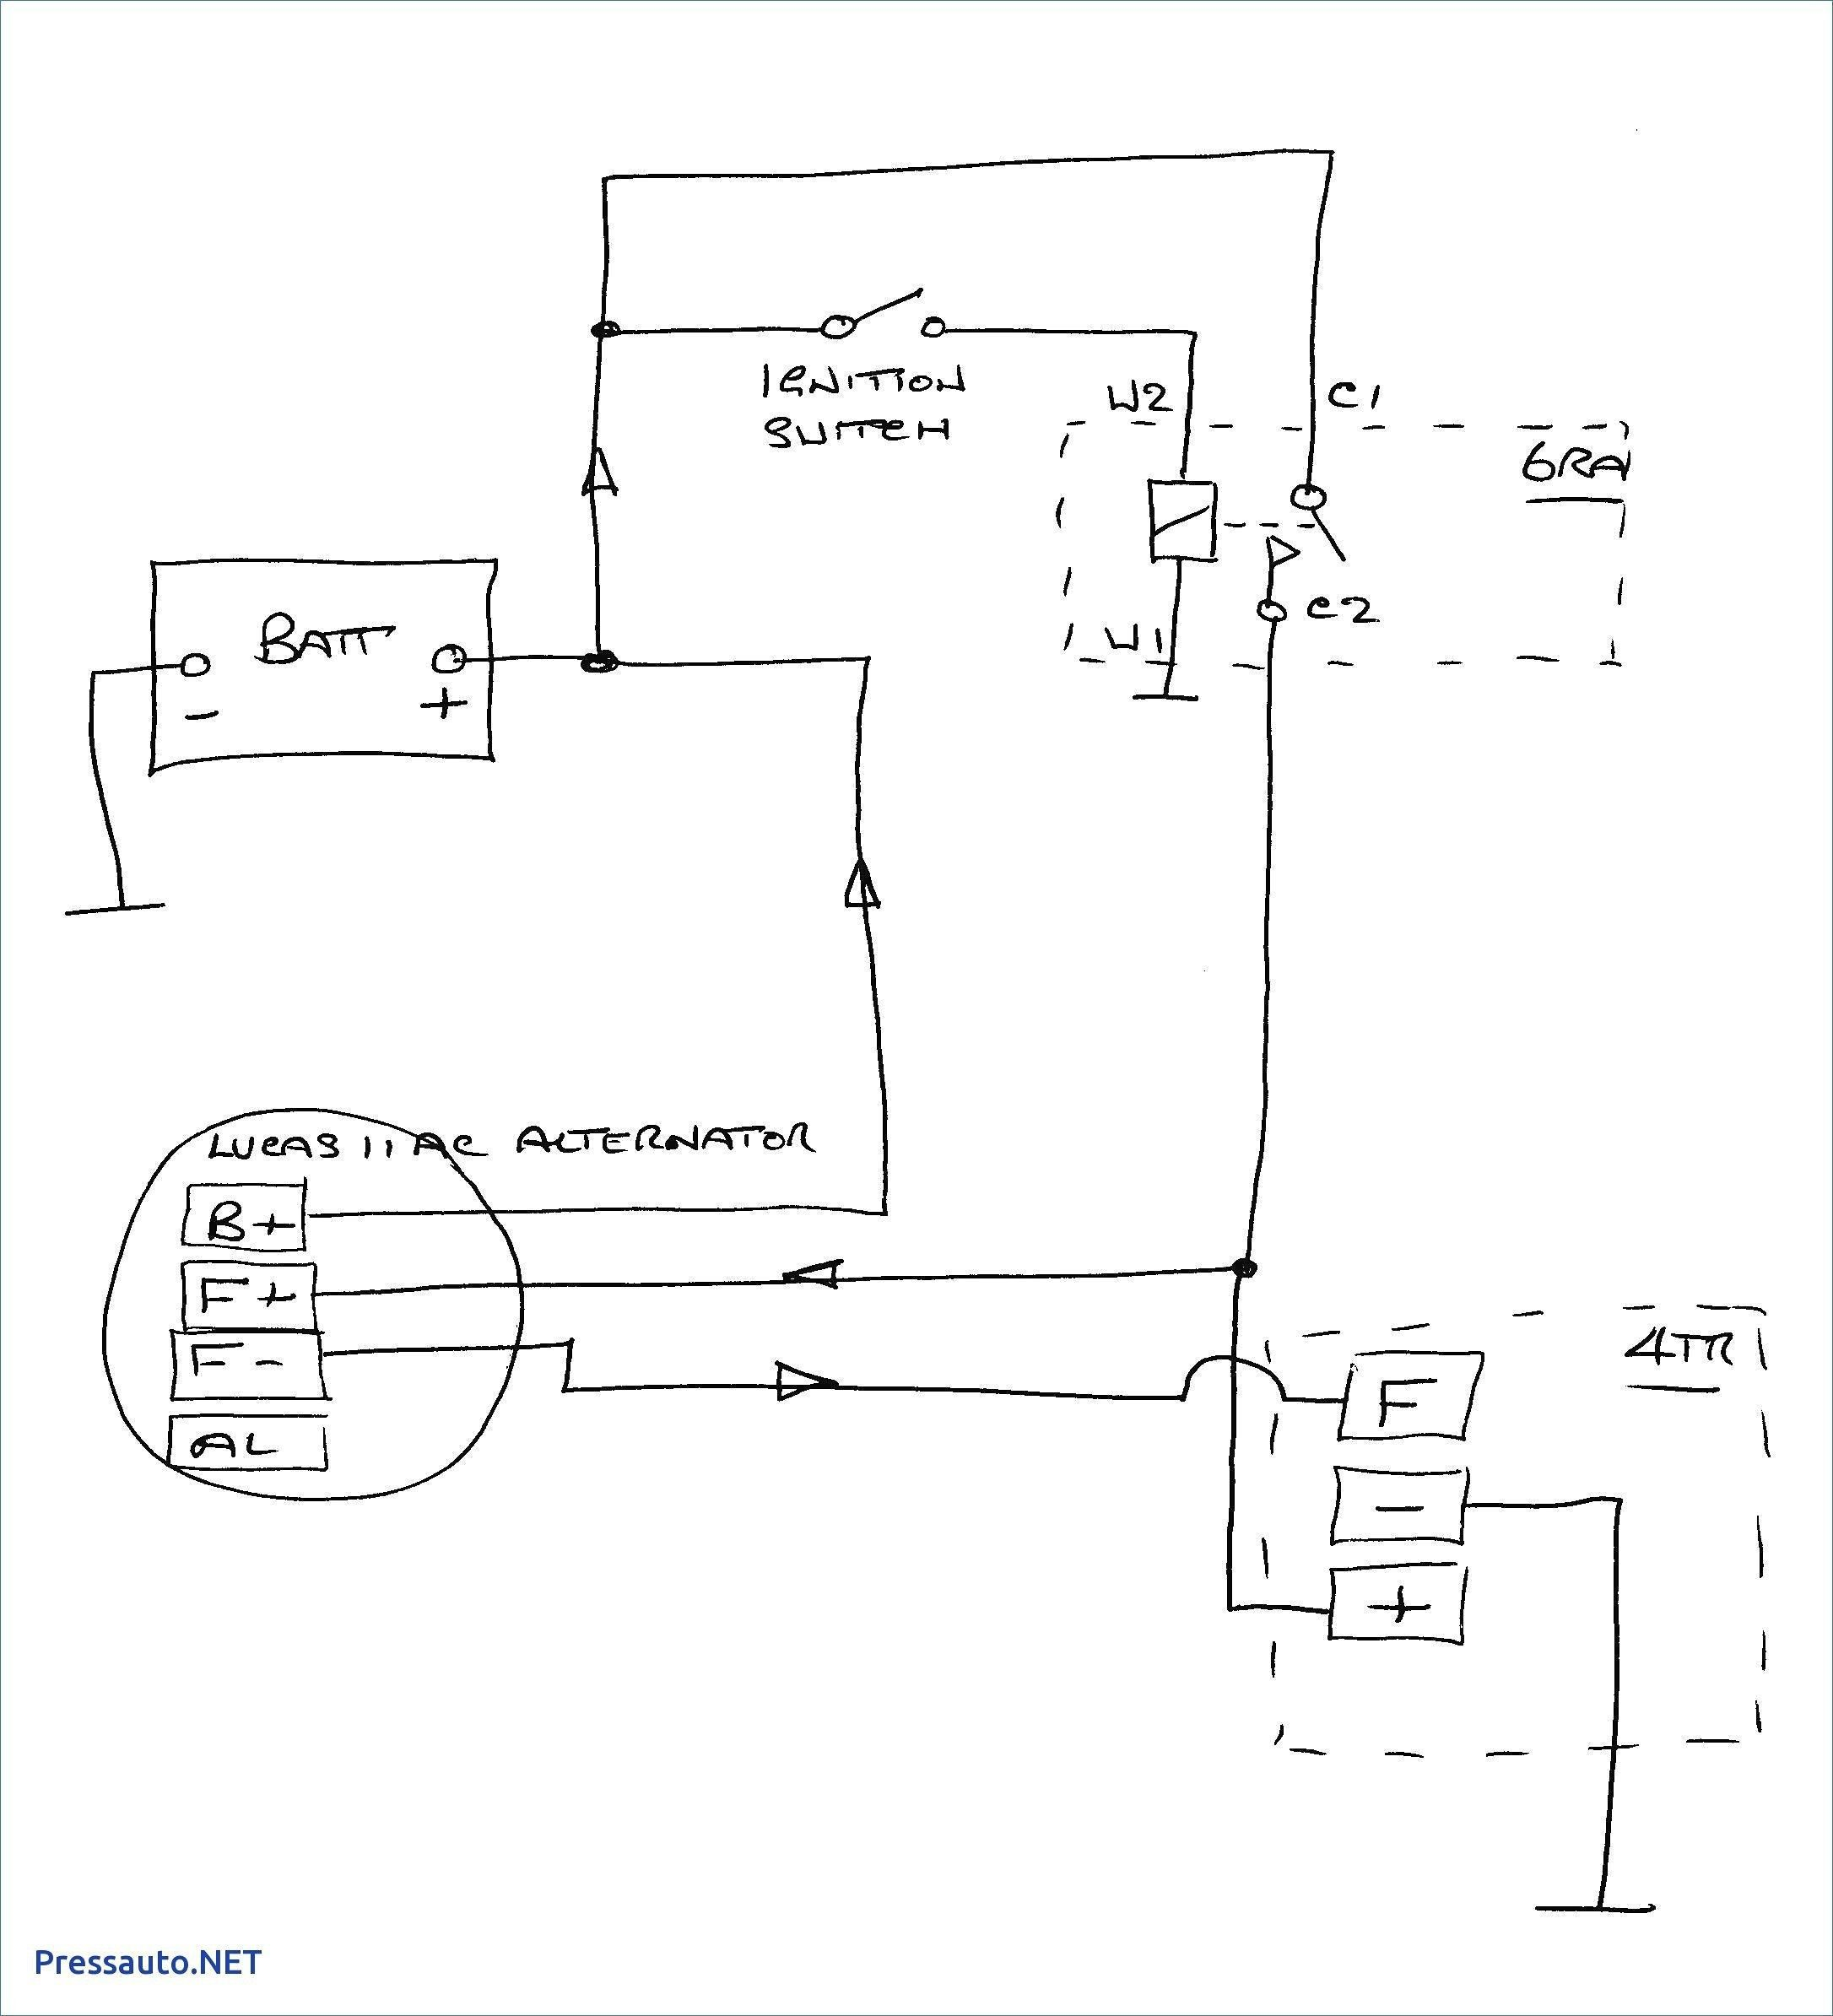 1970 Buick Skylark Wiring Diagram from i.pinimg.com